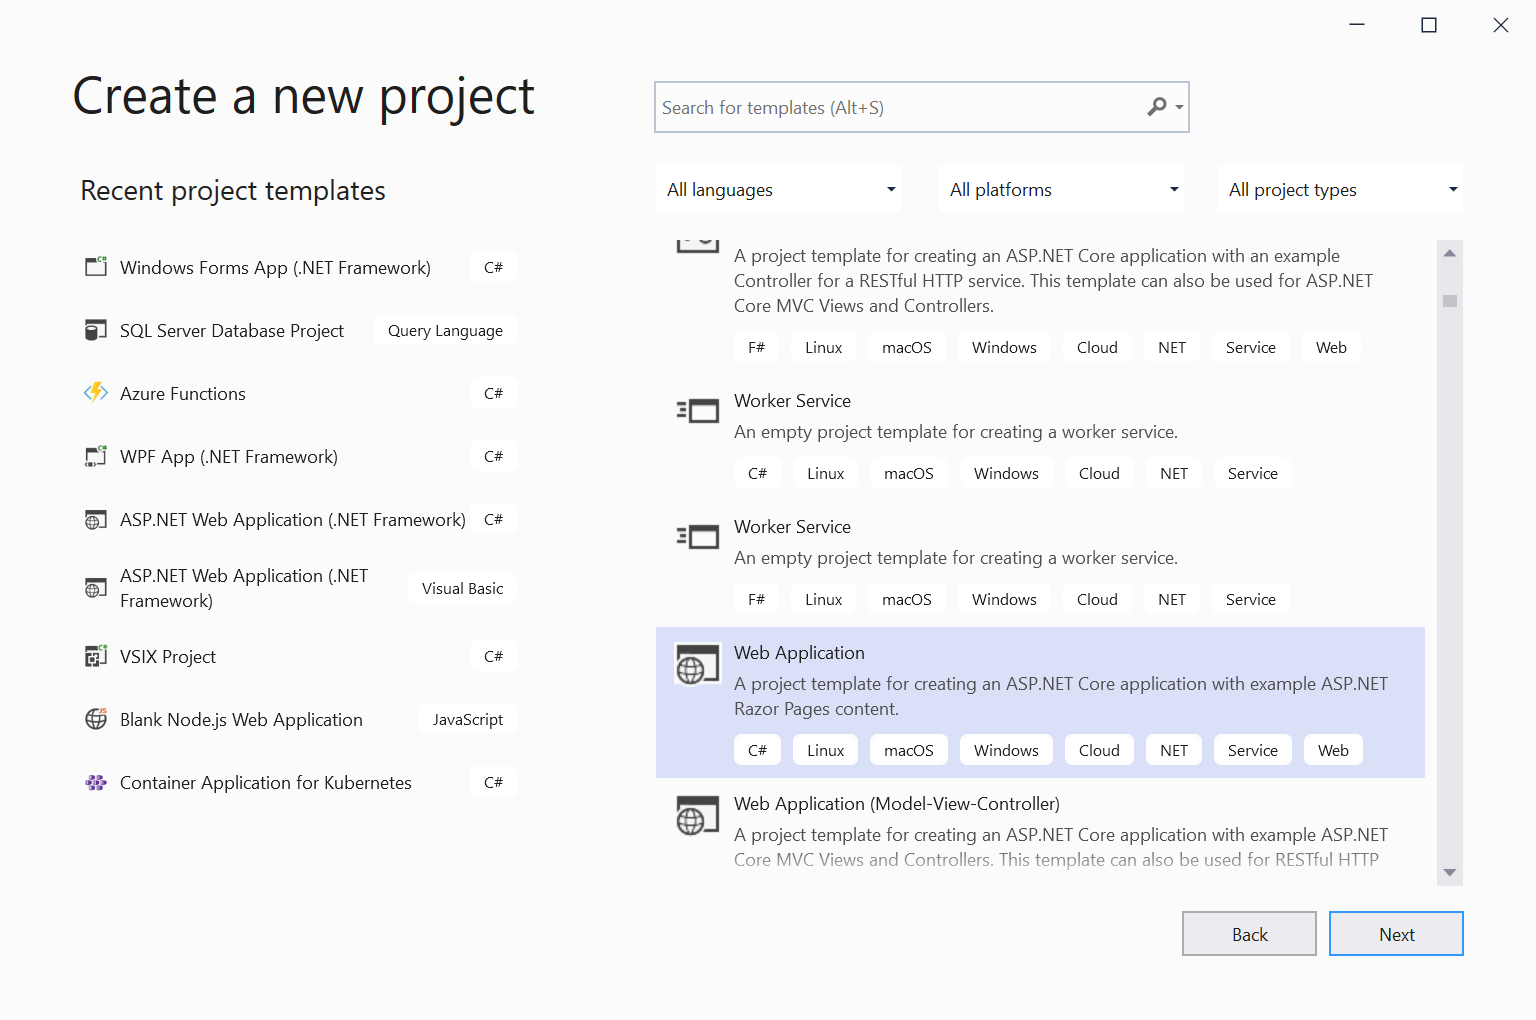 Image of New Project Dialog with templates listed